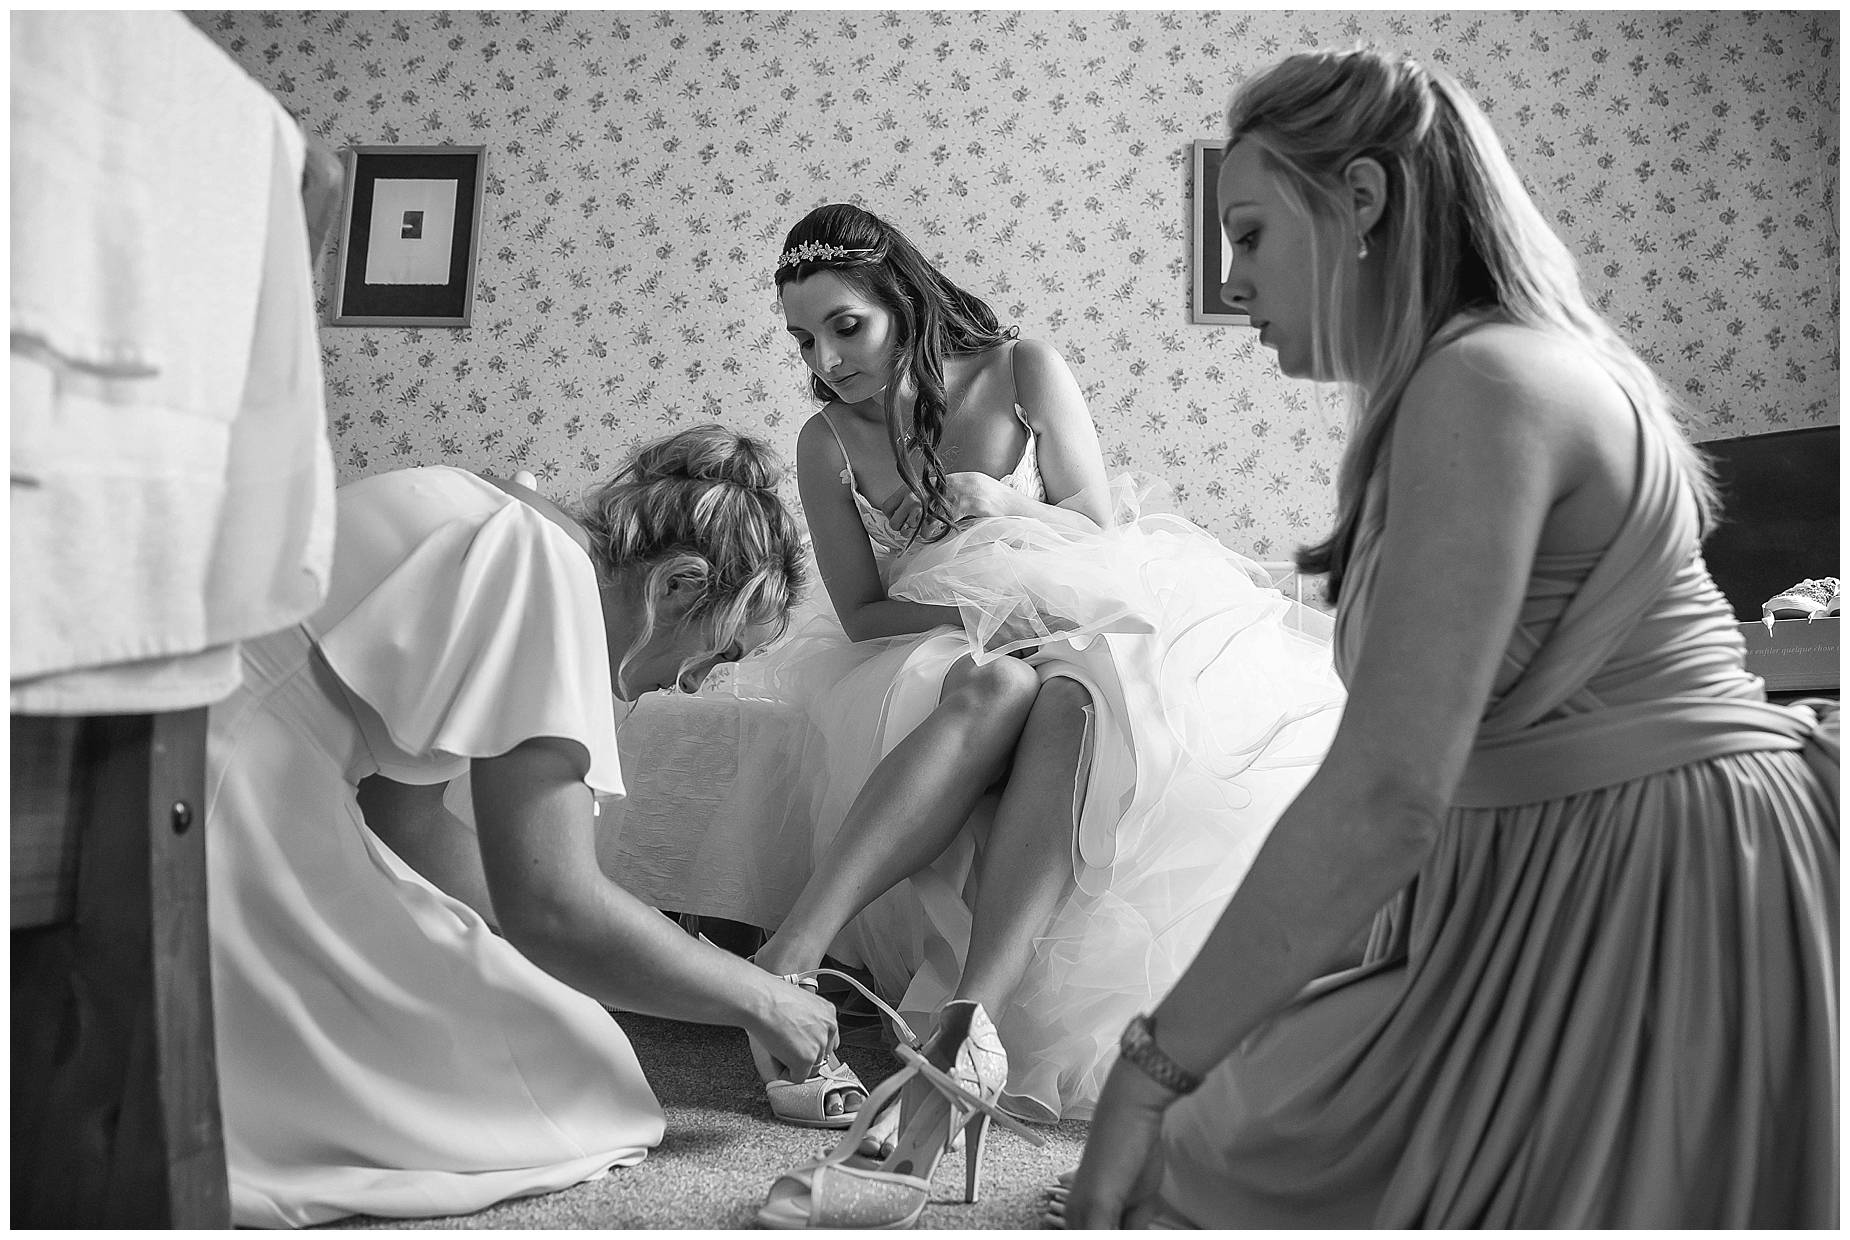 shoes being put on bride